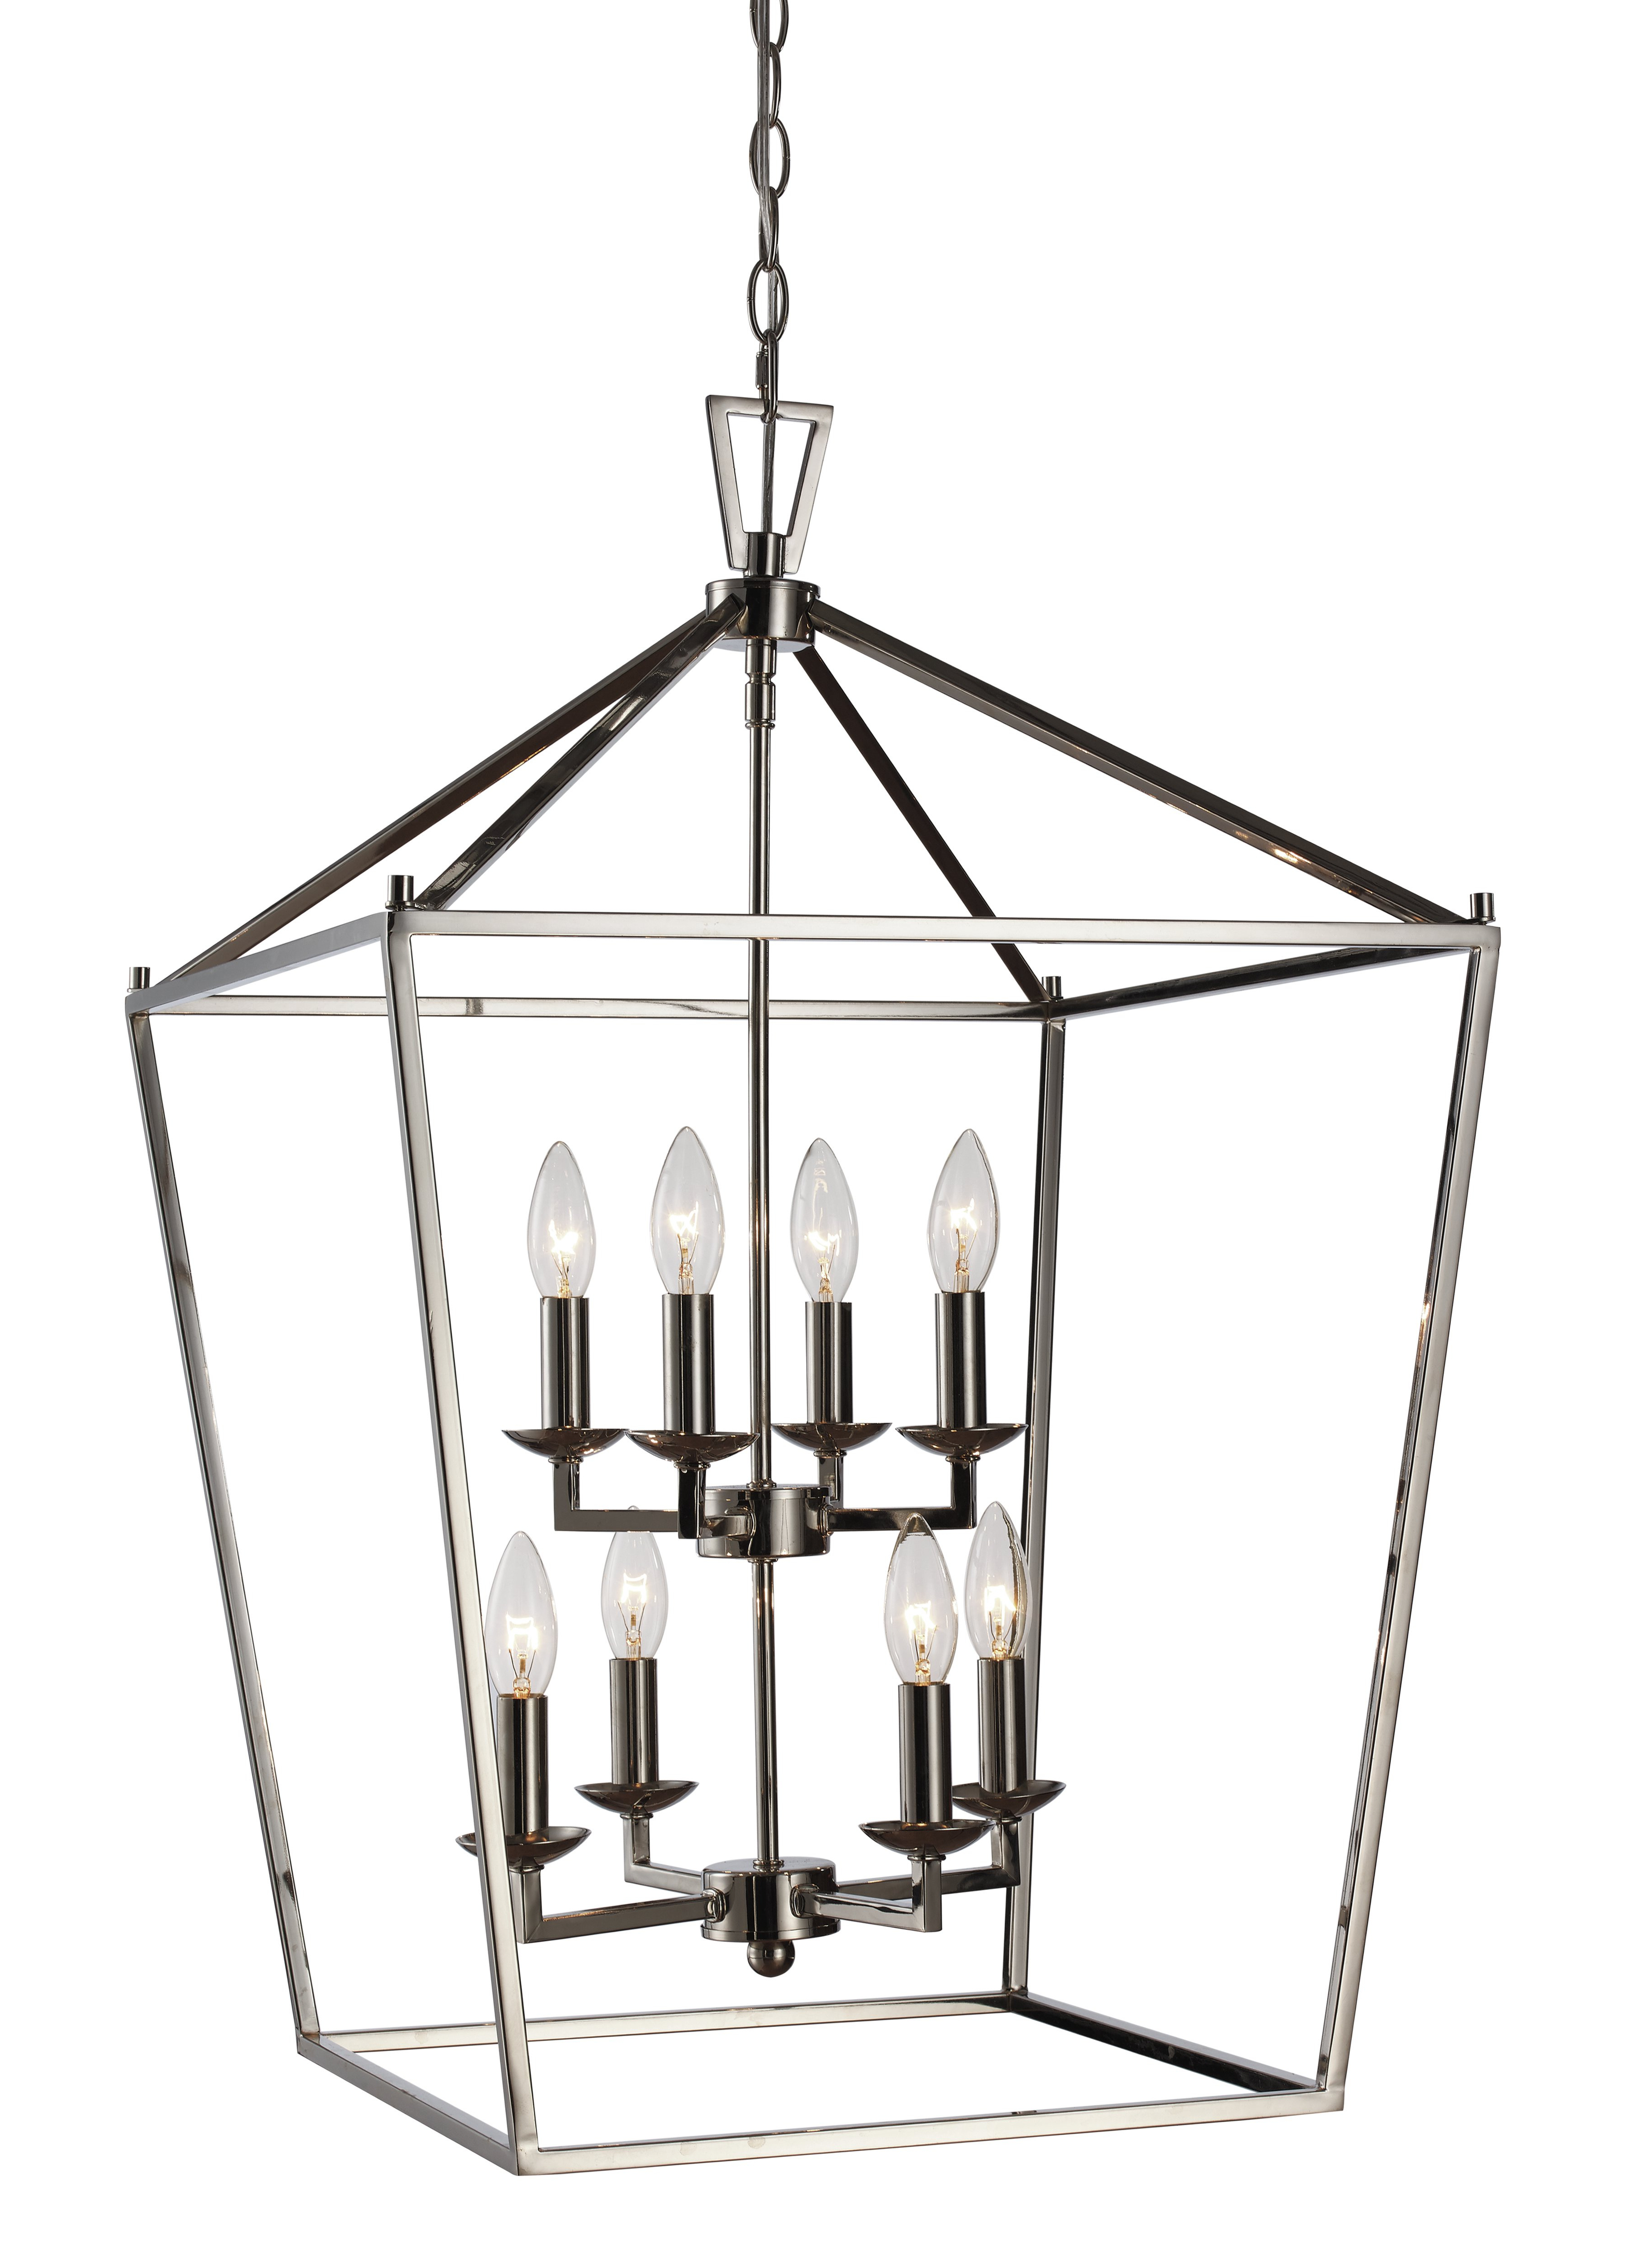 2020 Carmen 8 Light Lantern Tiered Pendants With Regard To Carmen 8 Light Lantern Geometric Pendant (Gallery 4 of 20)